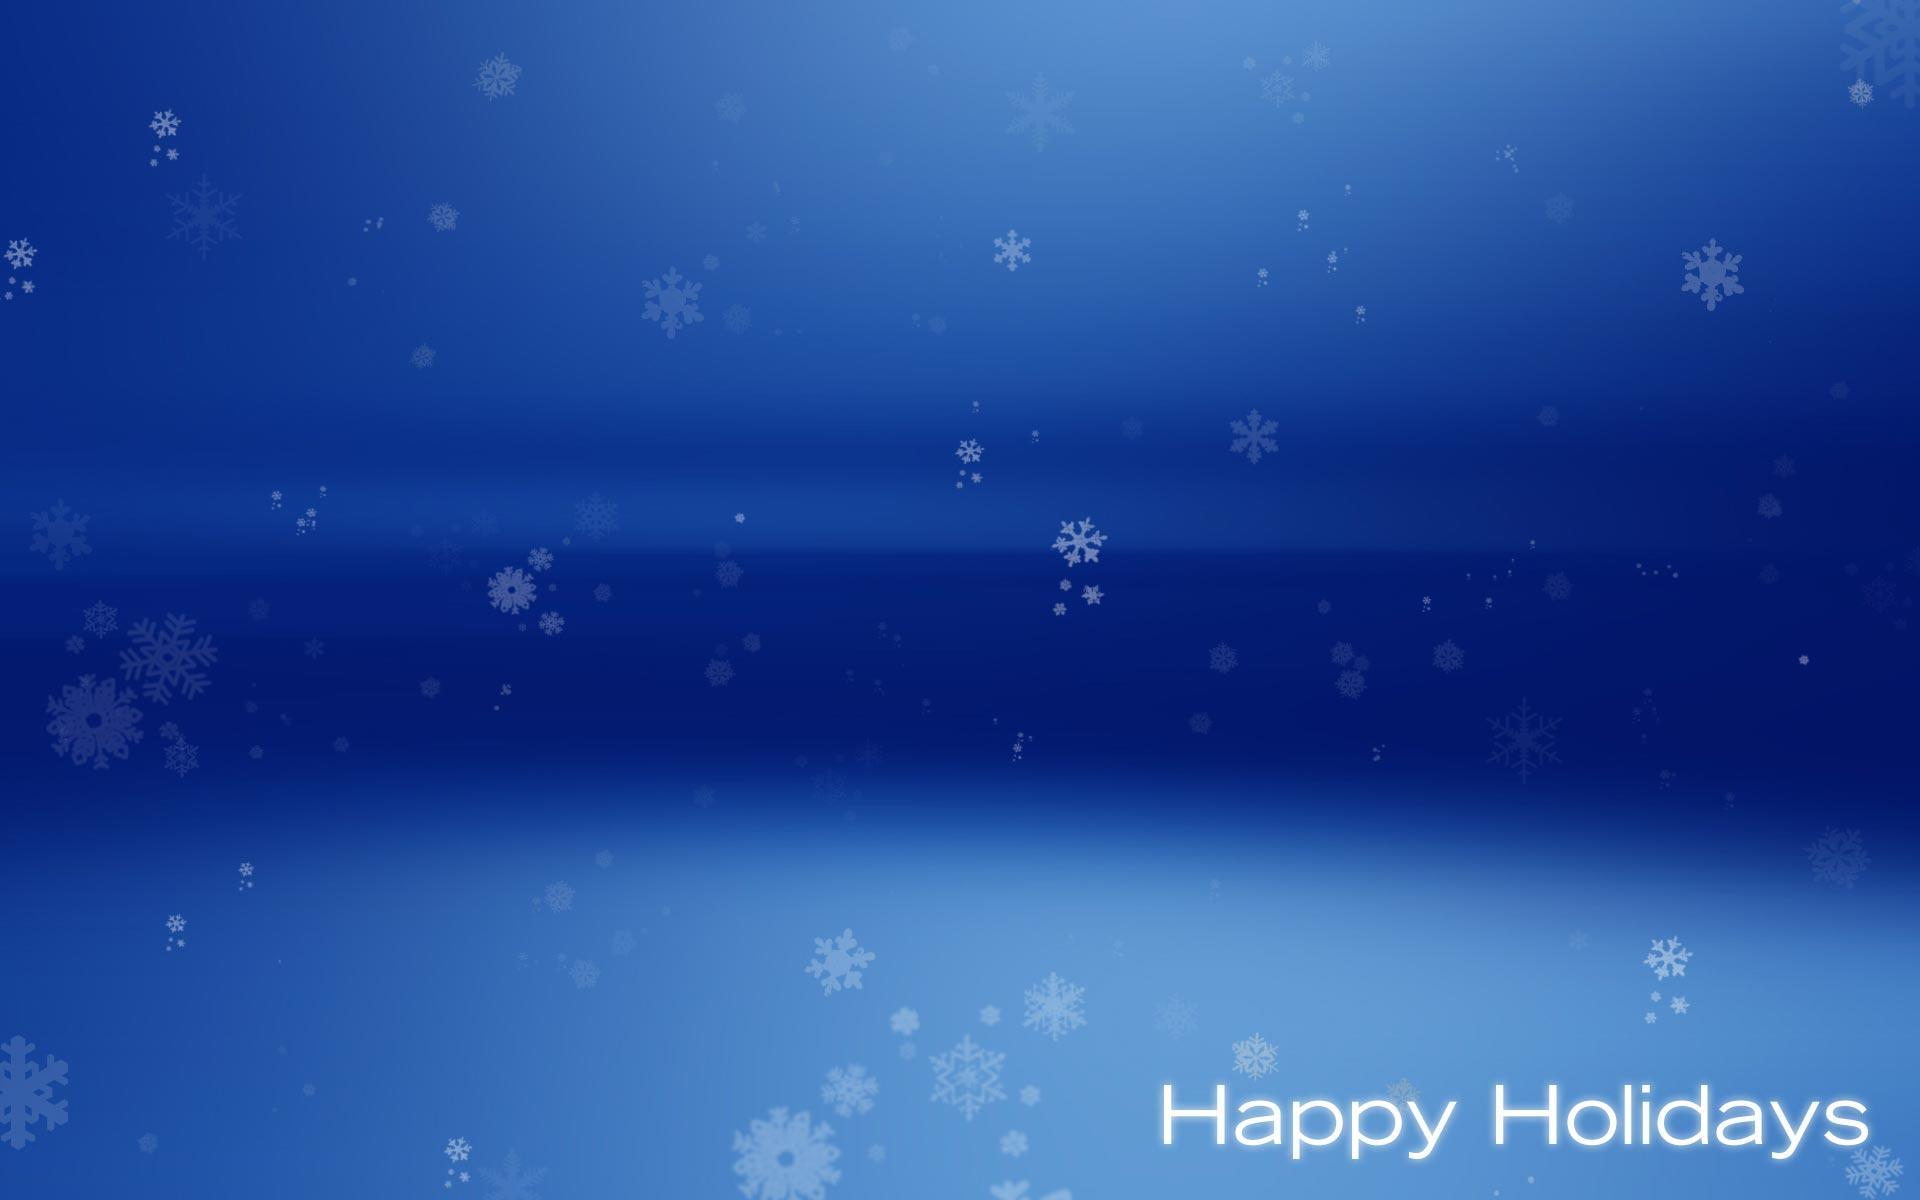 free wallpaper holidays - photo #28